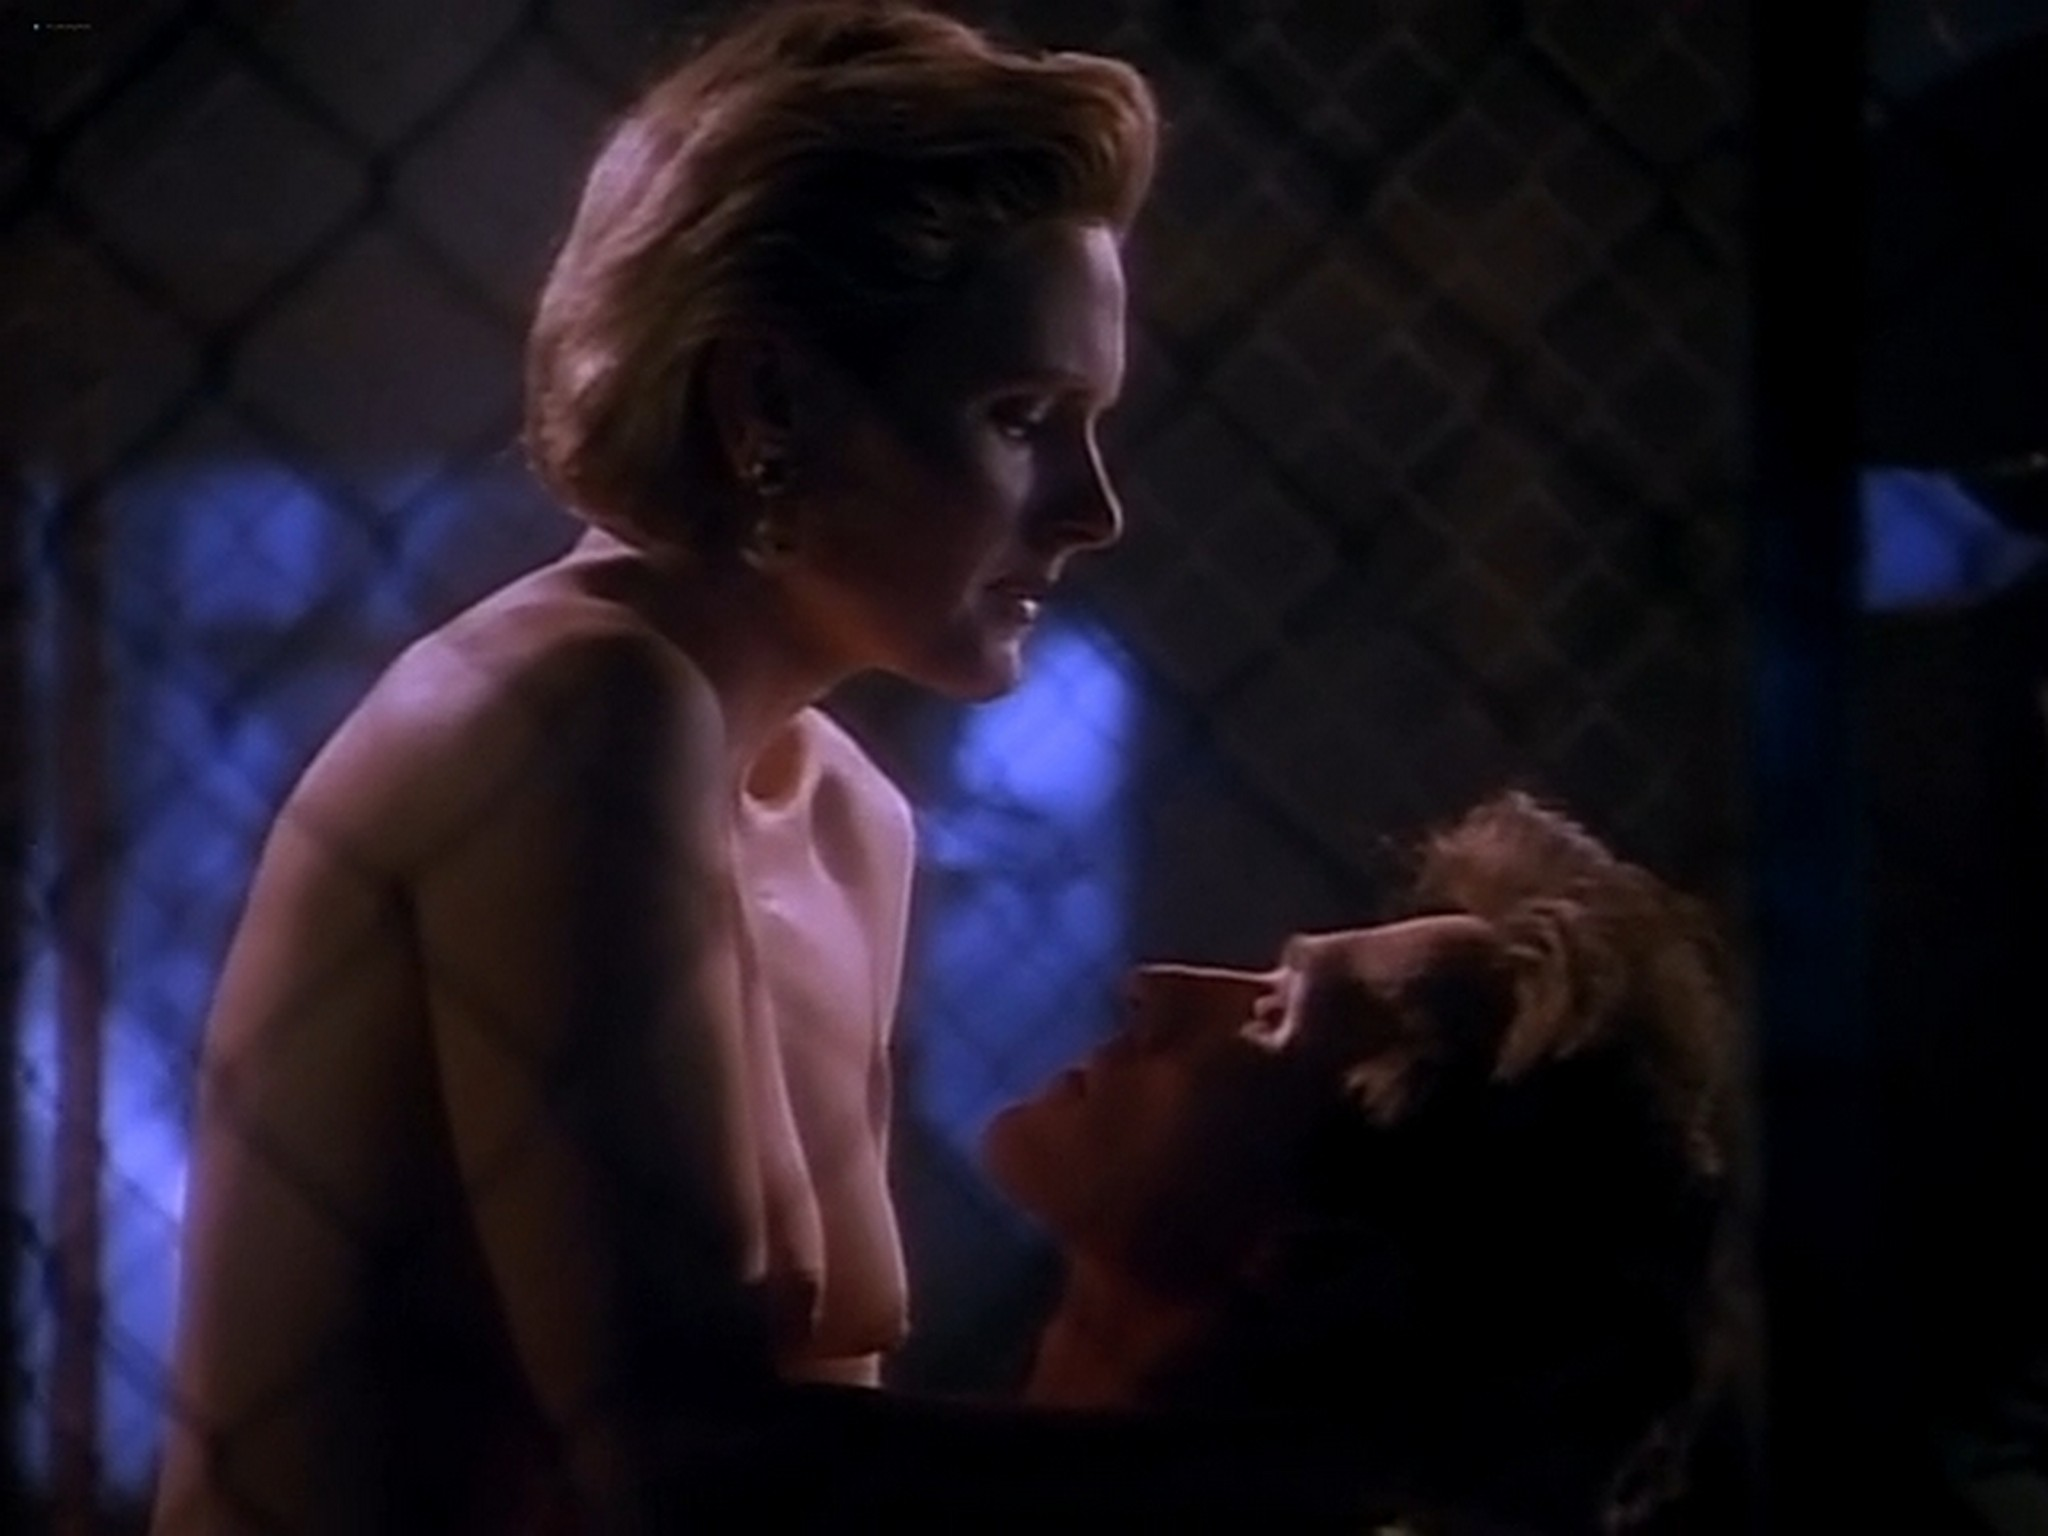 Denise Crosby nude and sex Red Shoe Diaries You Have the Right to Remain Silent 1992 DVDRip 11